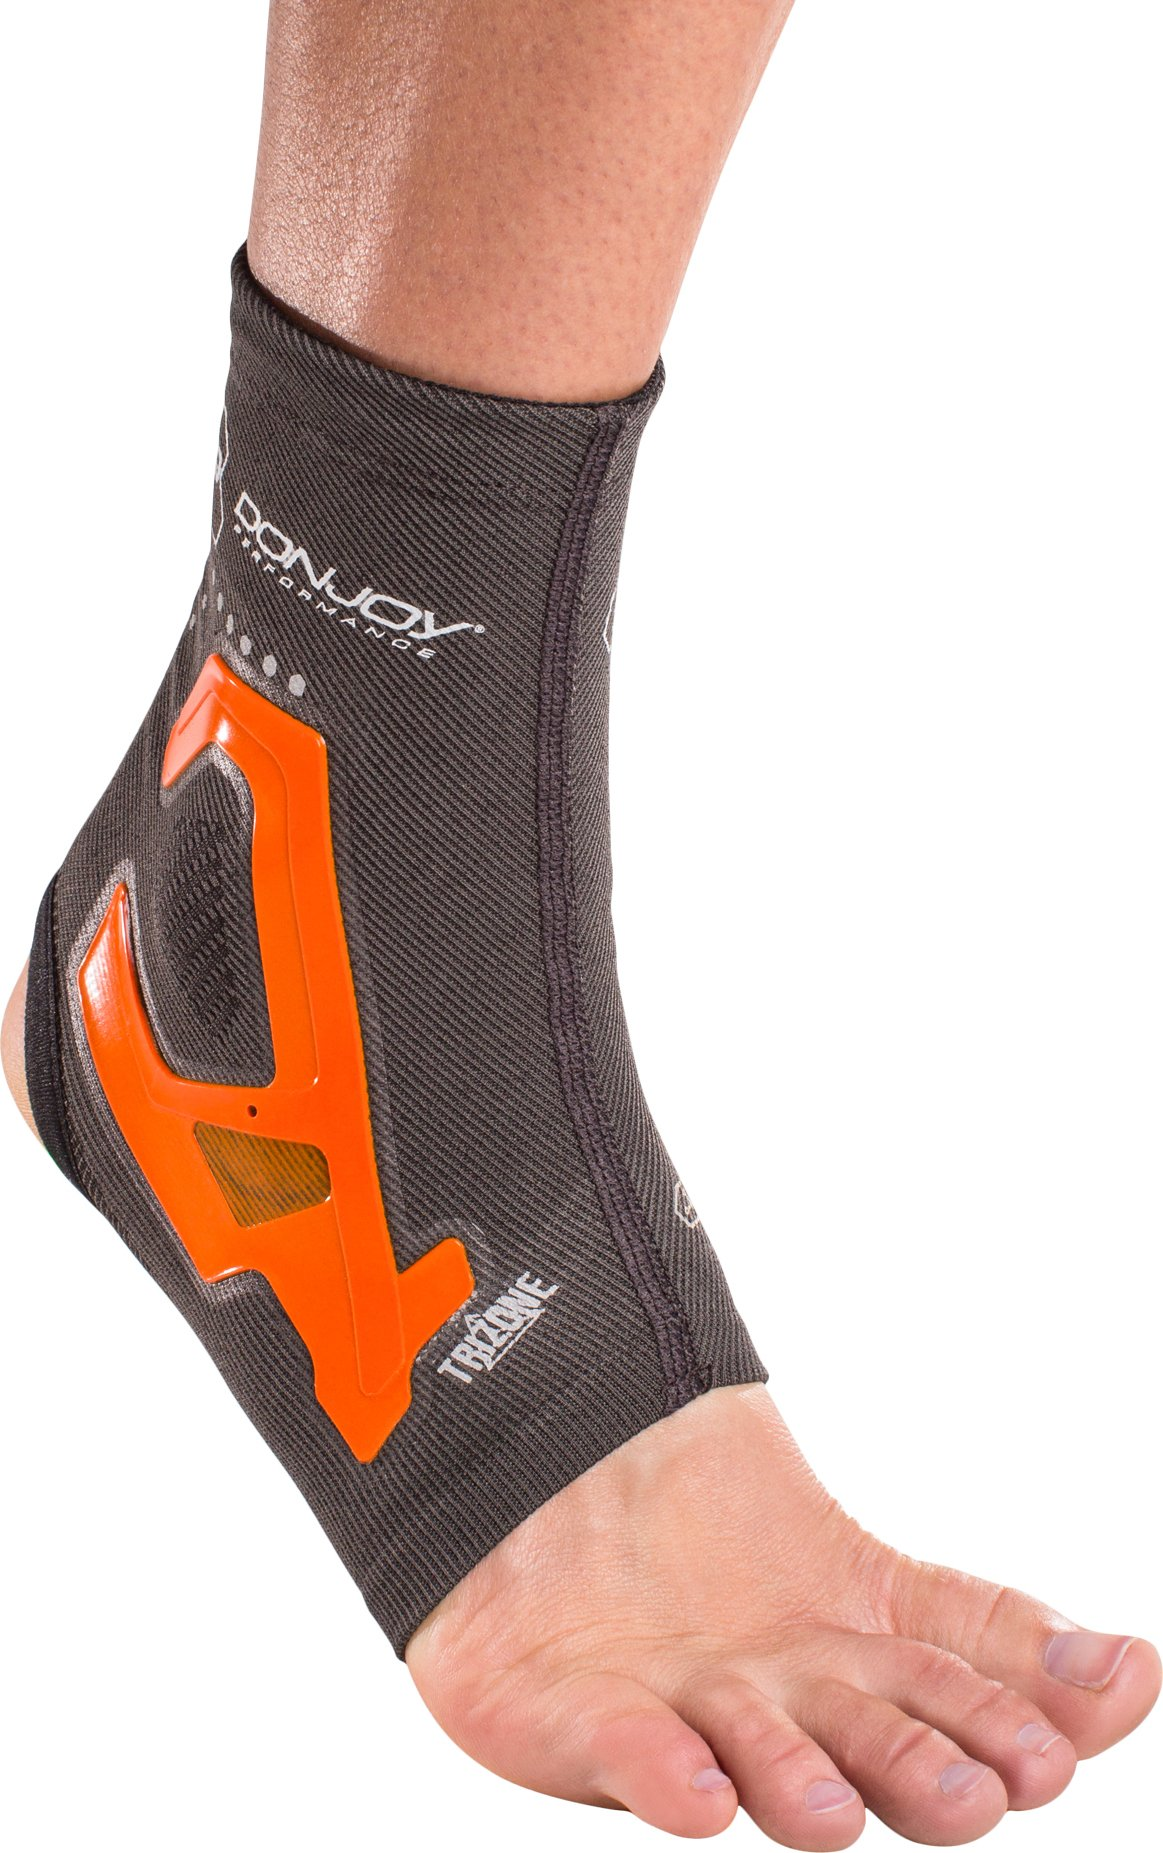 DonJoy Performance TRIZONE Compression: Ankle Support Brace, Orange, Large